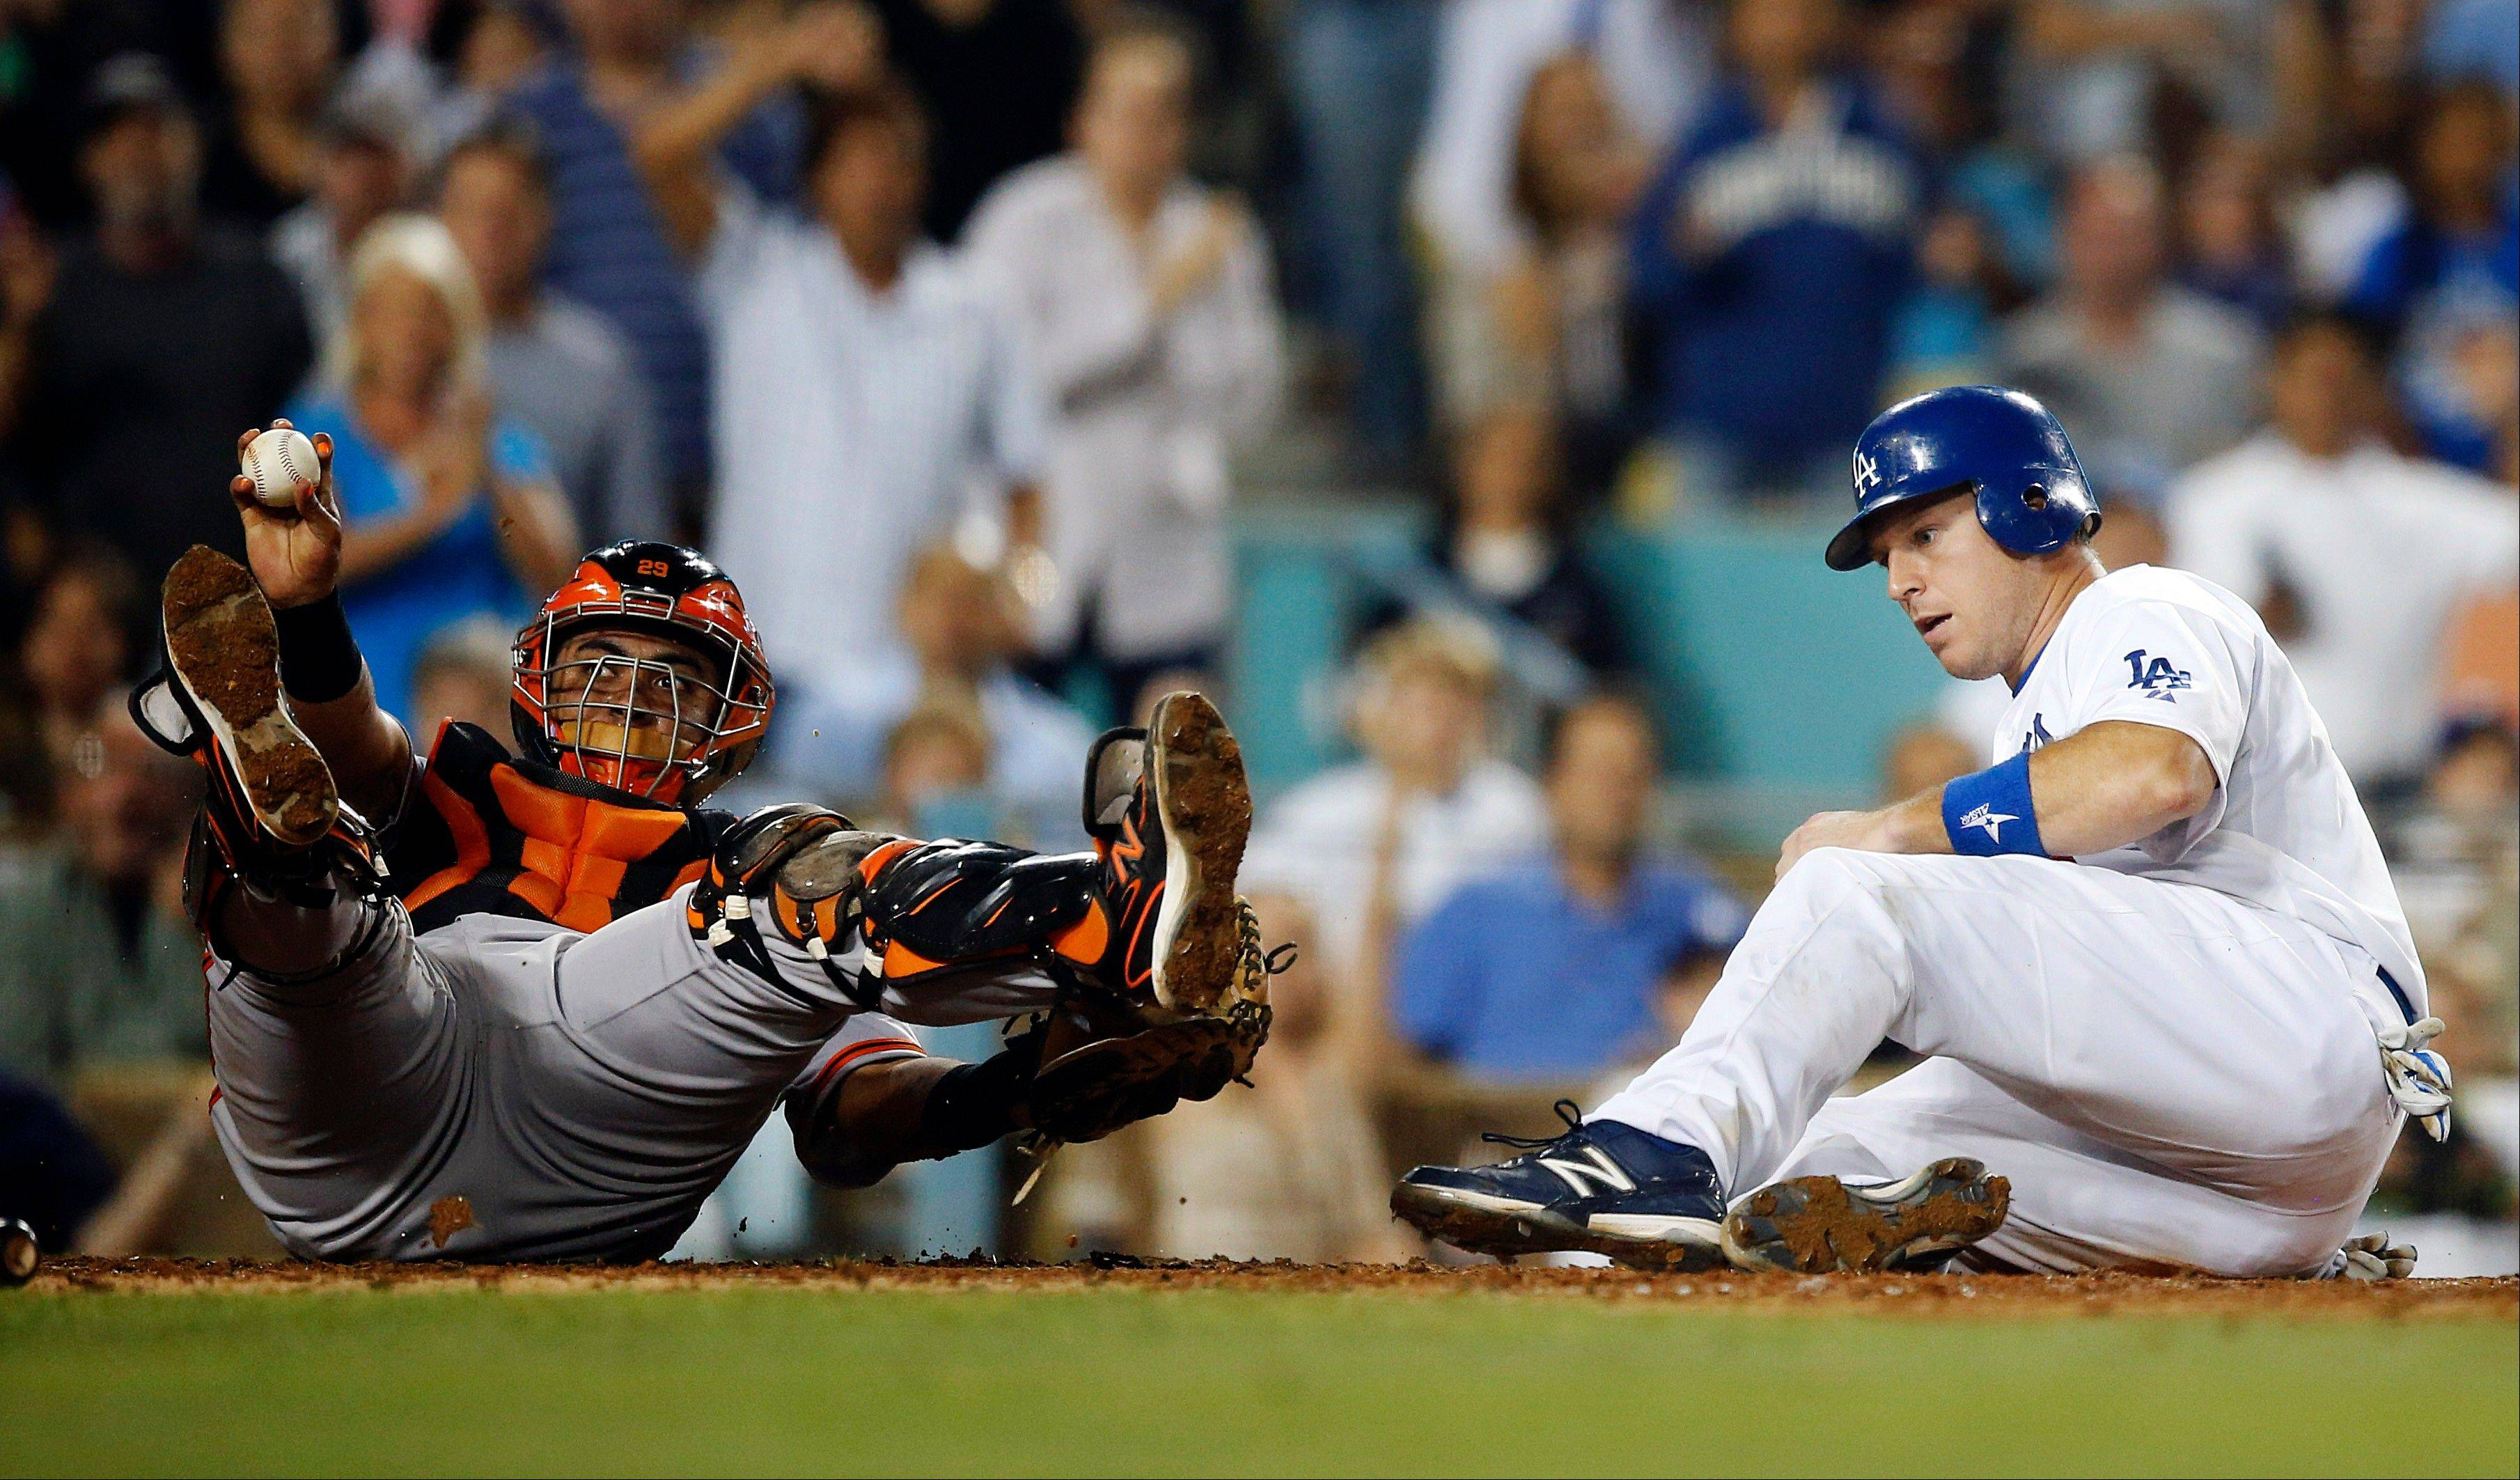 Giants catcher Hector Sanchez holds up the ball after tagging out the Dodgers' A.J. Ellis in the sixth inning Tuesday in Los Angeles.